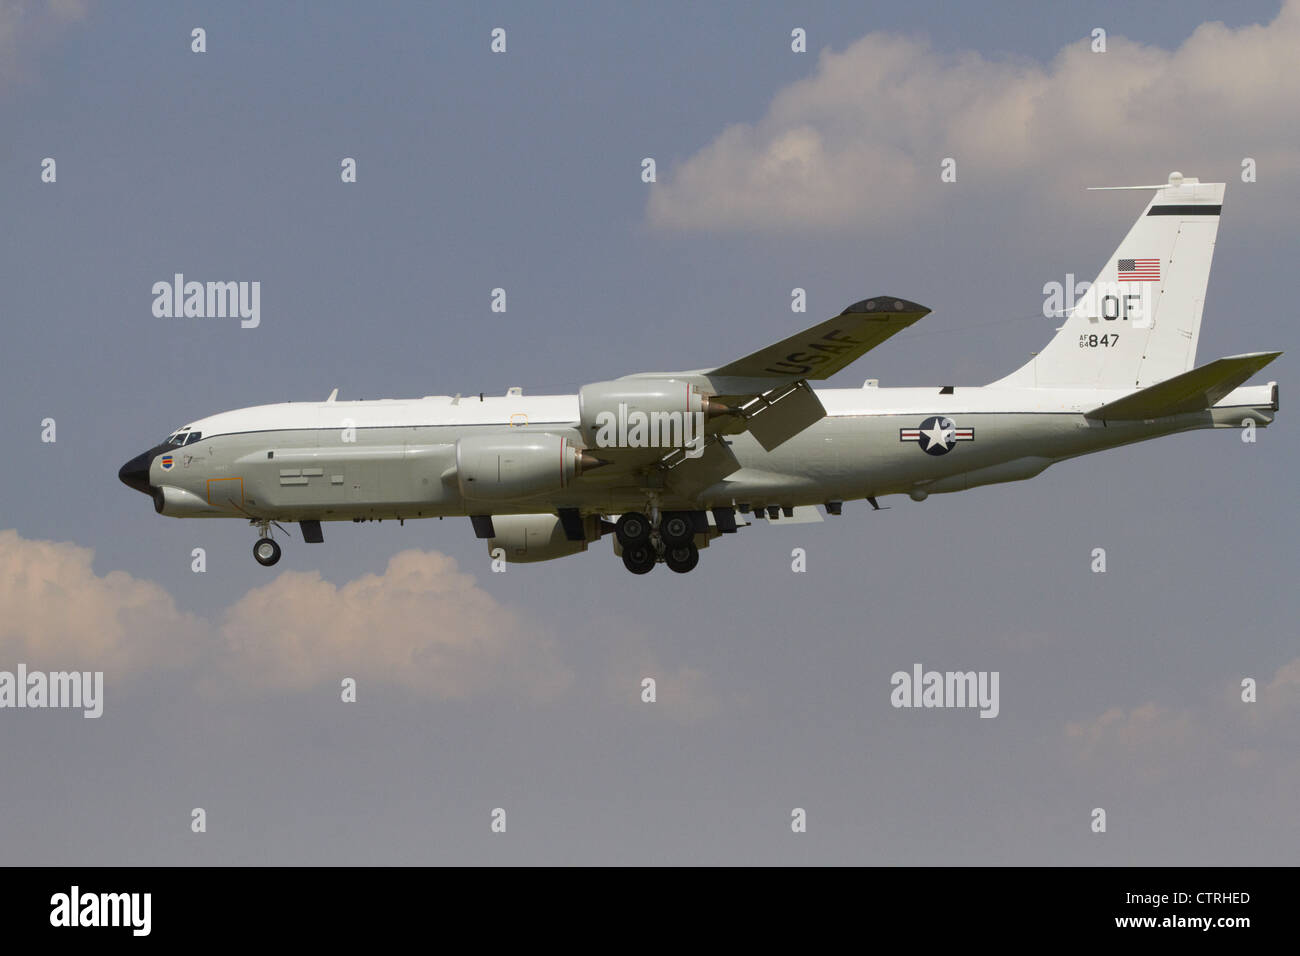 USAF boeing RC-135U combat sent on final approach - Stock Image